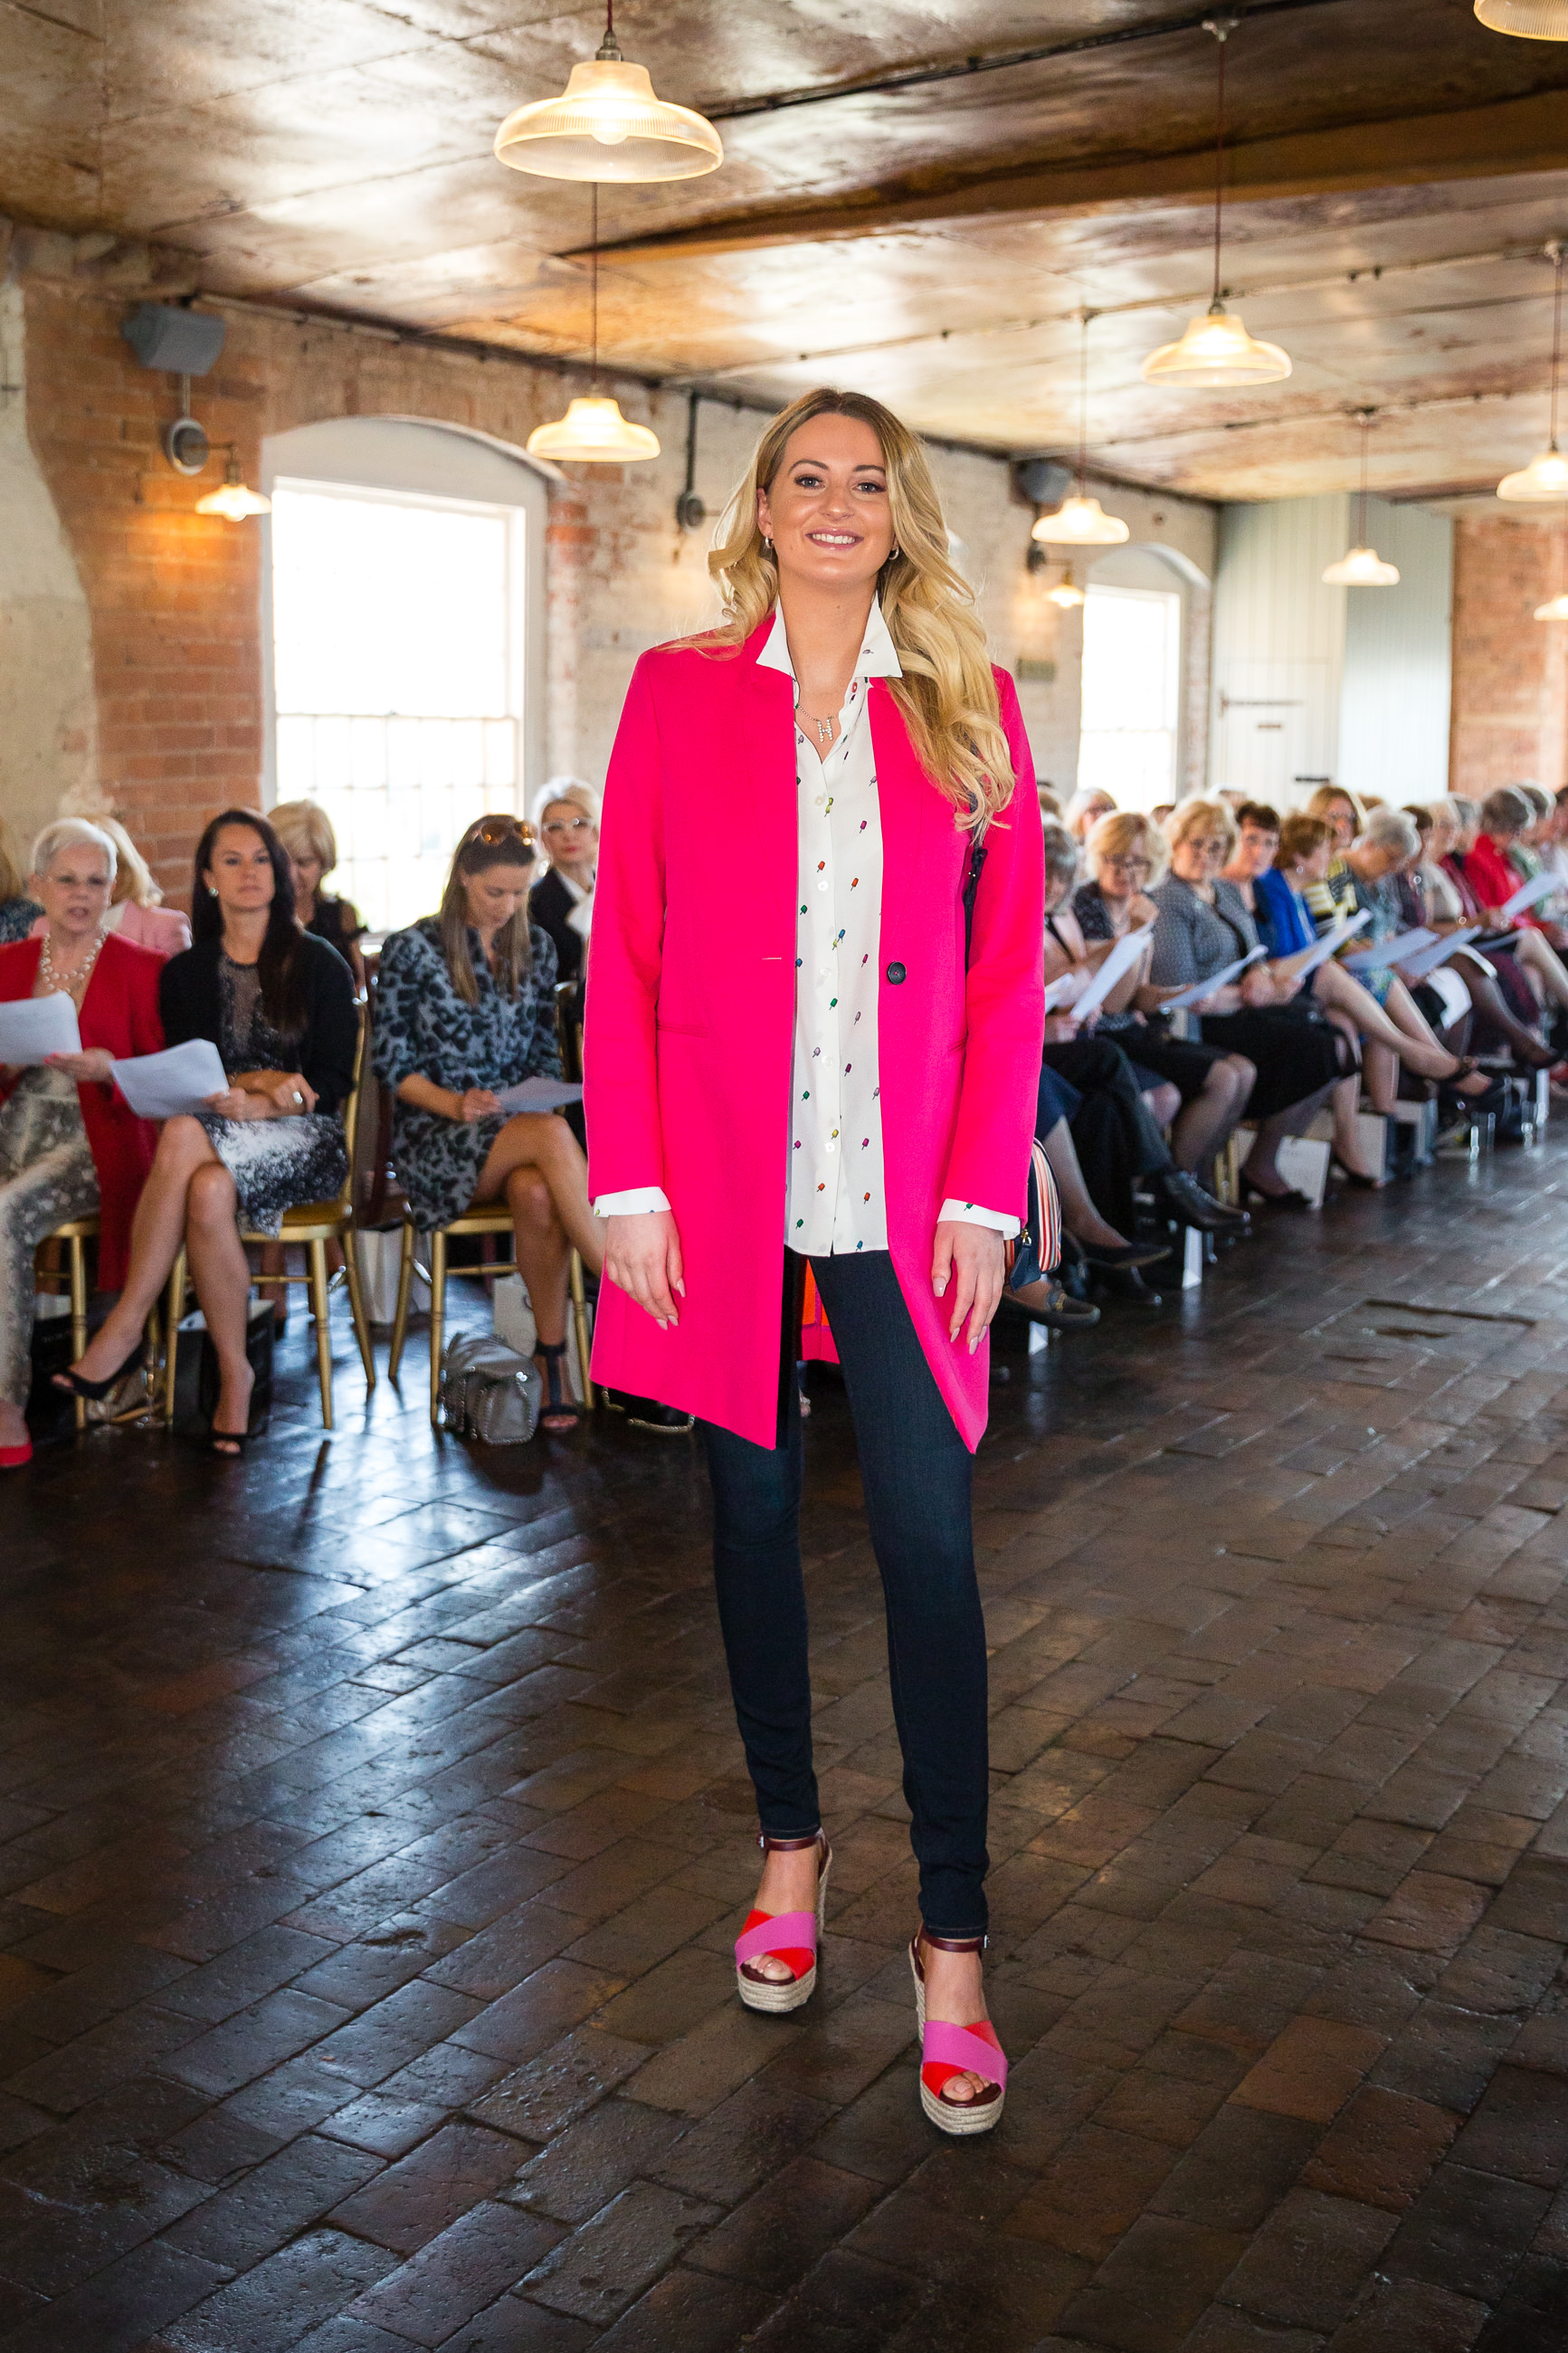 Designer-Fashion-Show-Clothing-Young-Ideas-West-Mill-Venue-Derby-Photography-Photographer-21.jpg